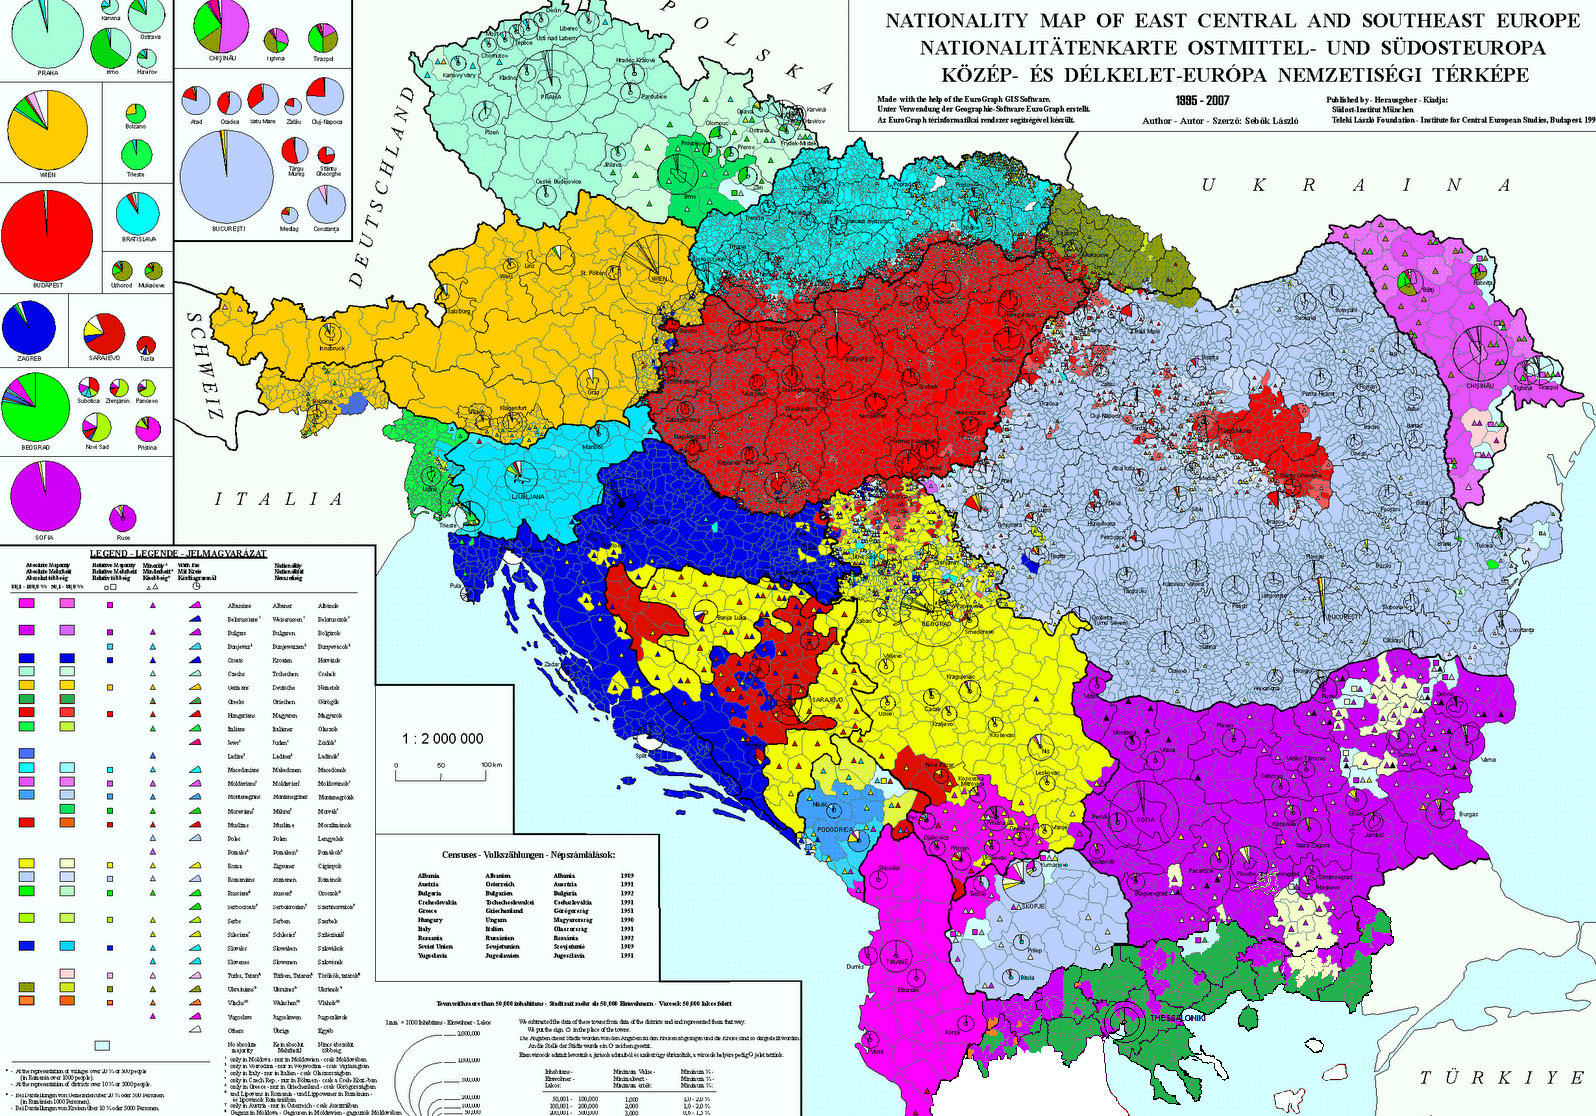 Map of ethnic groups in Albania, Austria, Bosnia, Bulgaria ... Ukraine Ethnic Map on ukraine historical map, ukraine ethnic division, ukraine map crimea, odessa ukraine map, ukraine population density map, ukraine map interactive, 2014 ukraine map, ukraine demographic map, ukraine world map, ukraine 1914 map, ukraine regions map, ukraine west russia, ukraine flag, ukraine language map, eastern europe ukraine russia map, ukraine protests, ukraine division map, conflict in ukraine map, kharkov ukraine map,